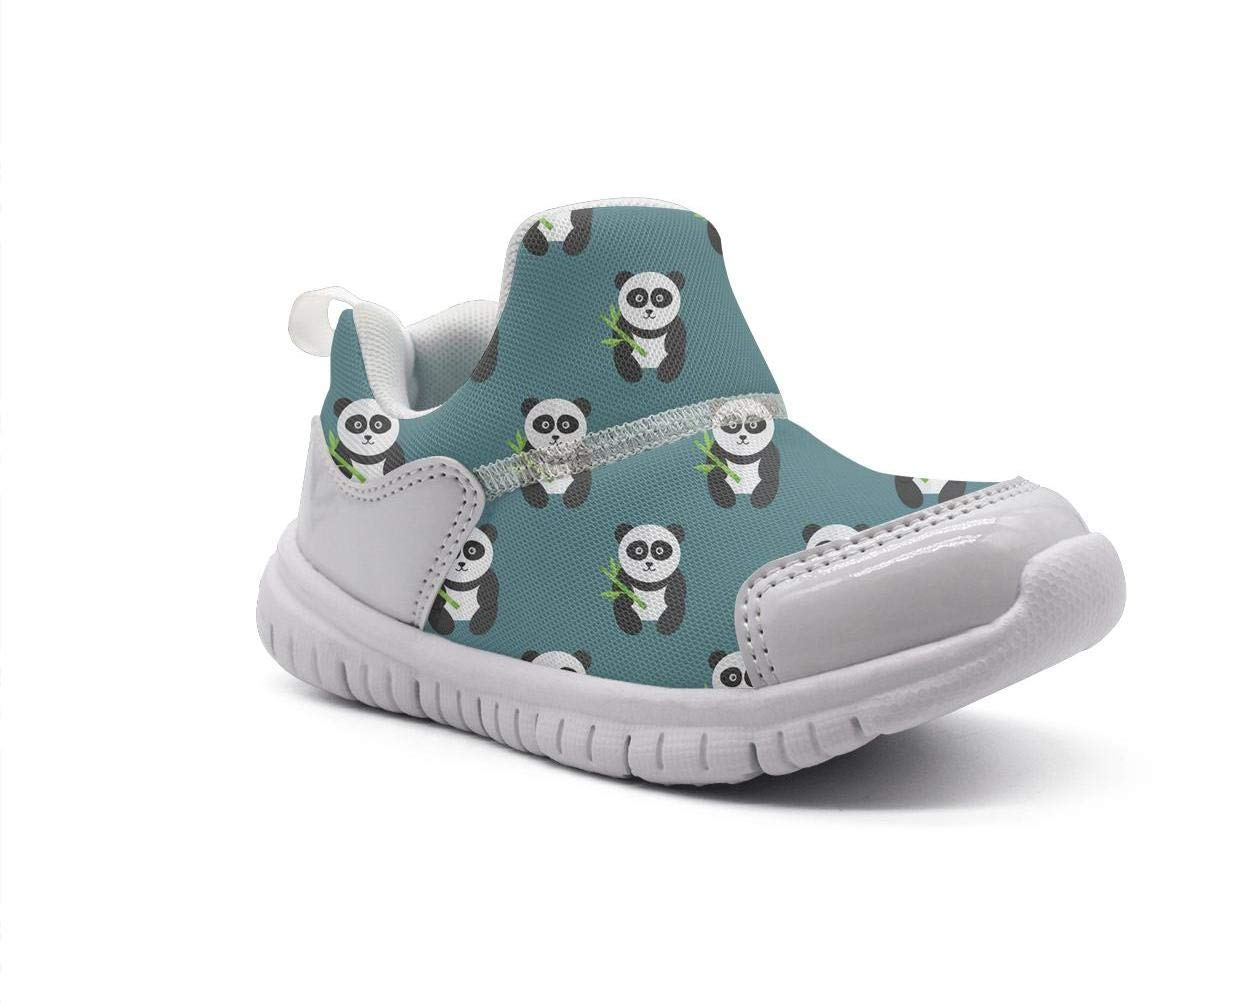 ONEYUAN Children Panda Bear Kid Casual Lightweight Sport Shoes Sneakers Walking Athletic Shoes